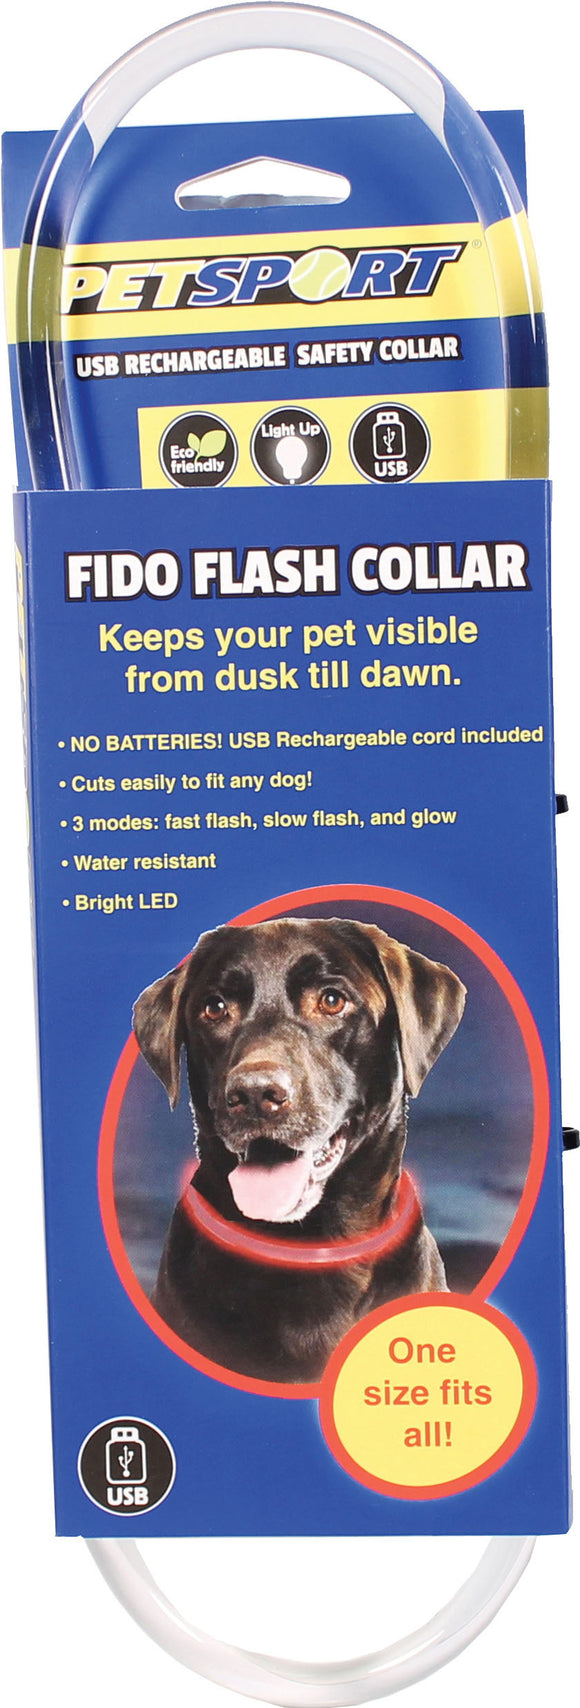 Petsport - Fido Flash Usb Rechargeable Led Safety Collar